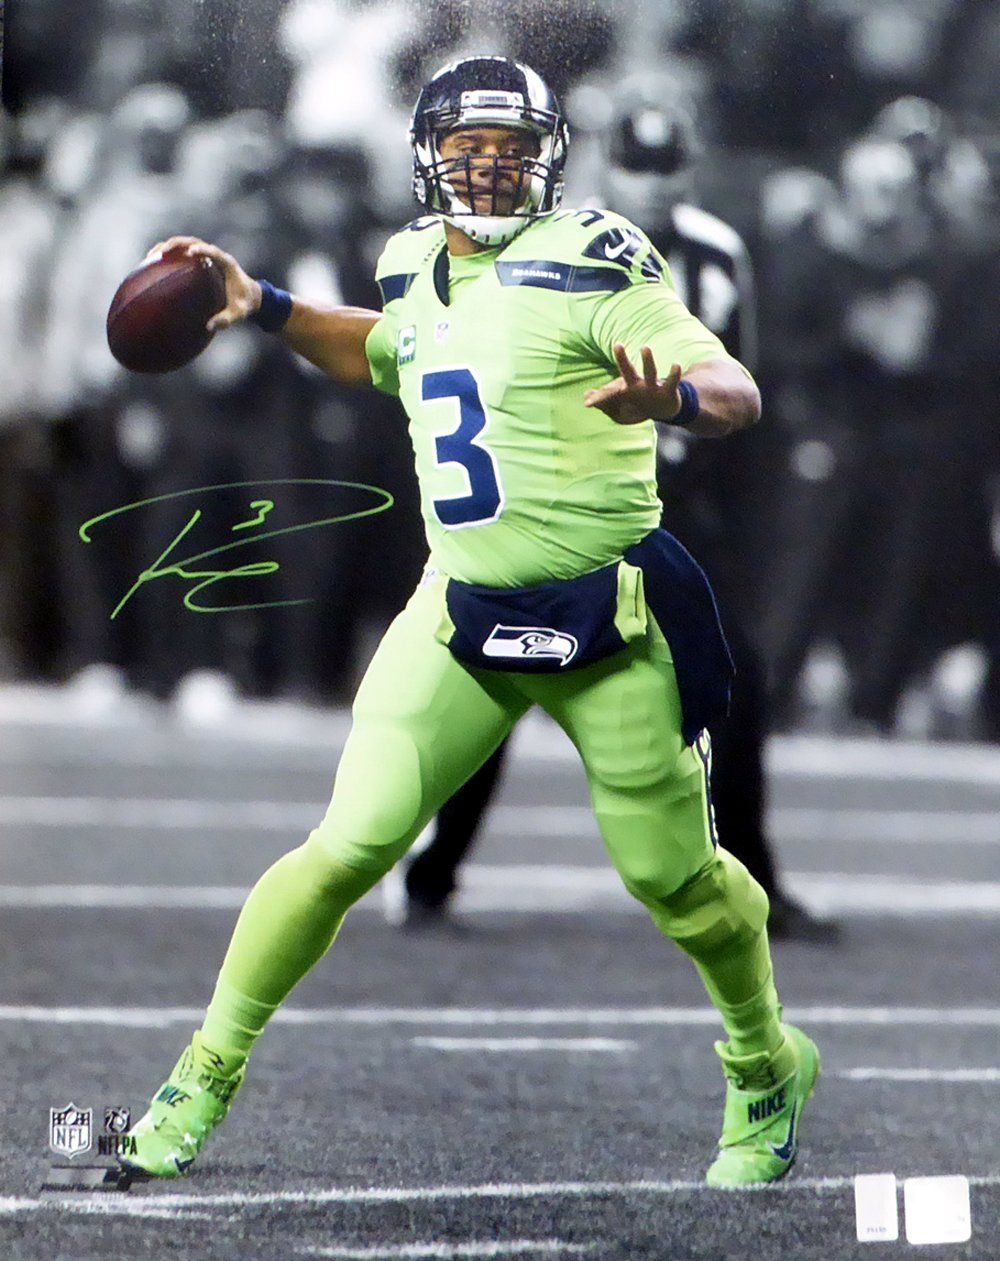 8b720bf0da5 Color Rush, Sport Football, Football Helmets, Green Colors, Russell Wilson,  Sports